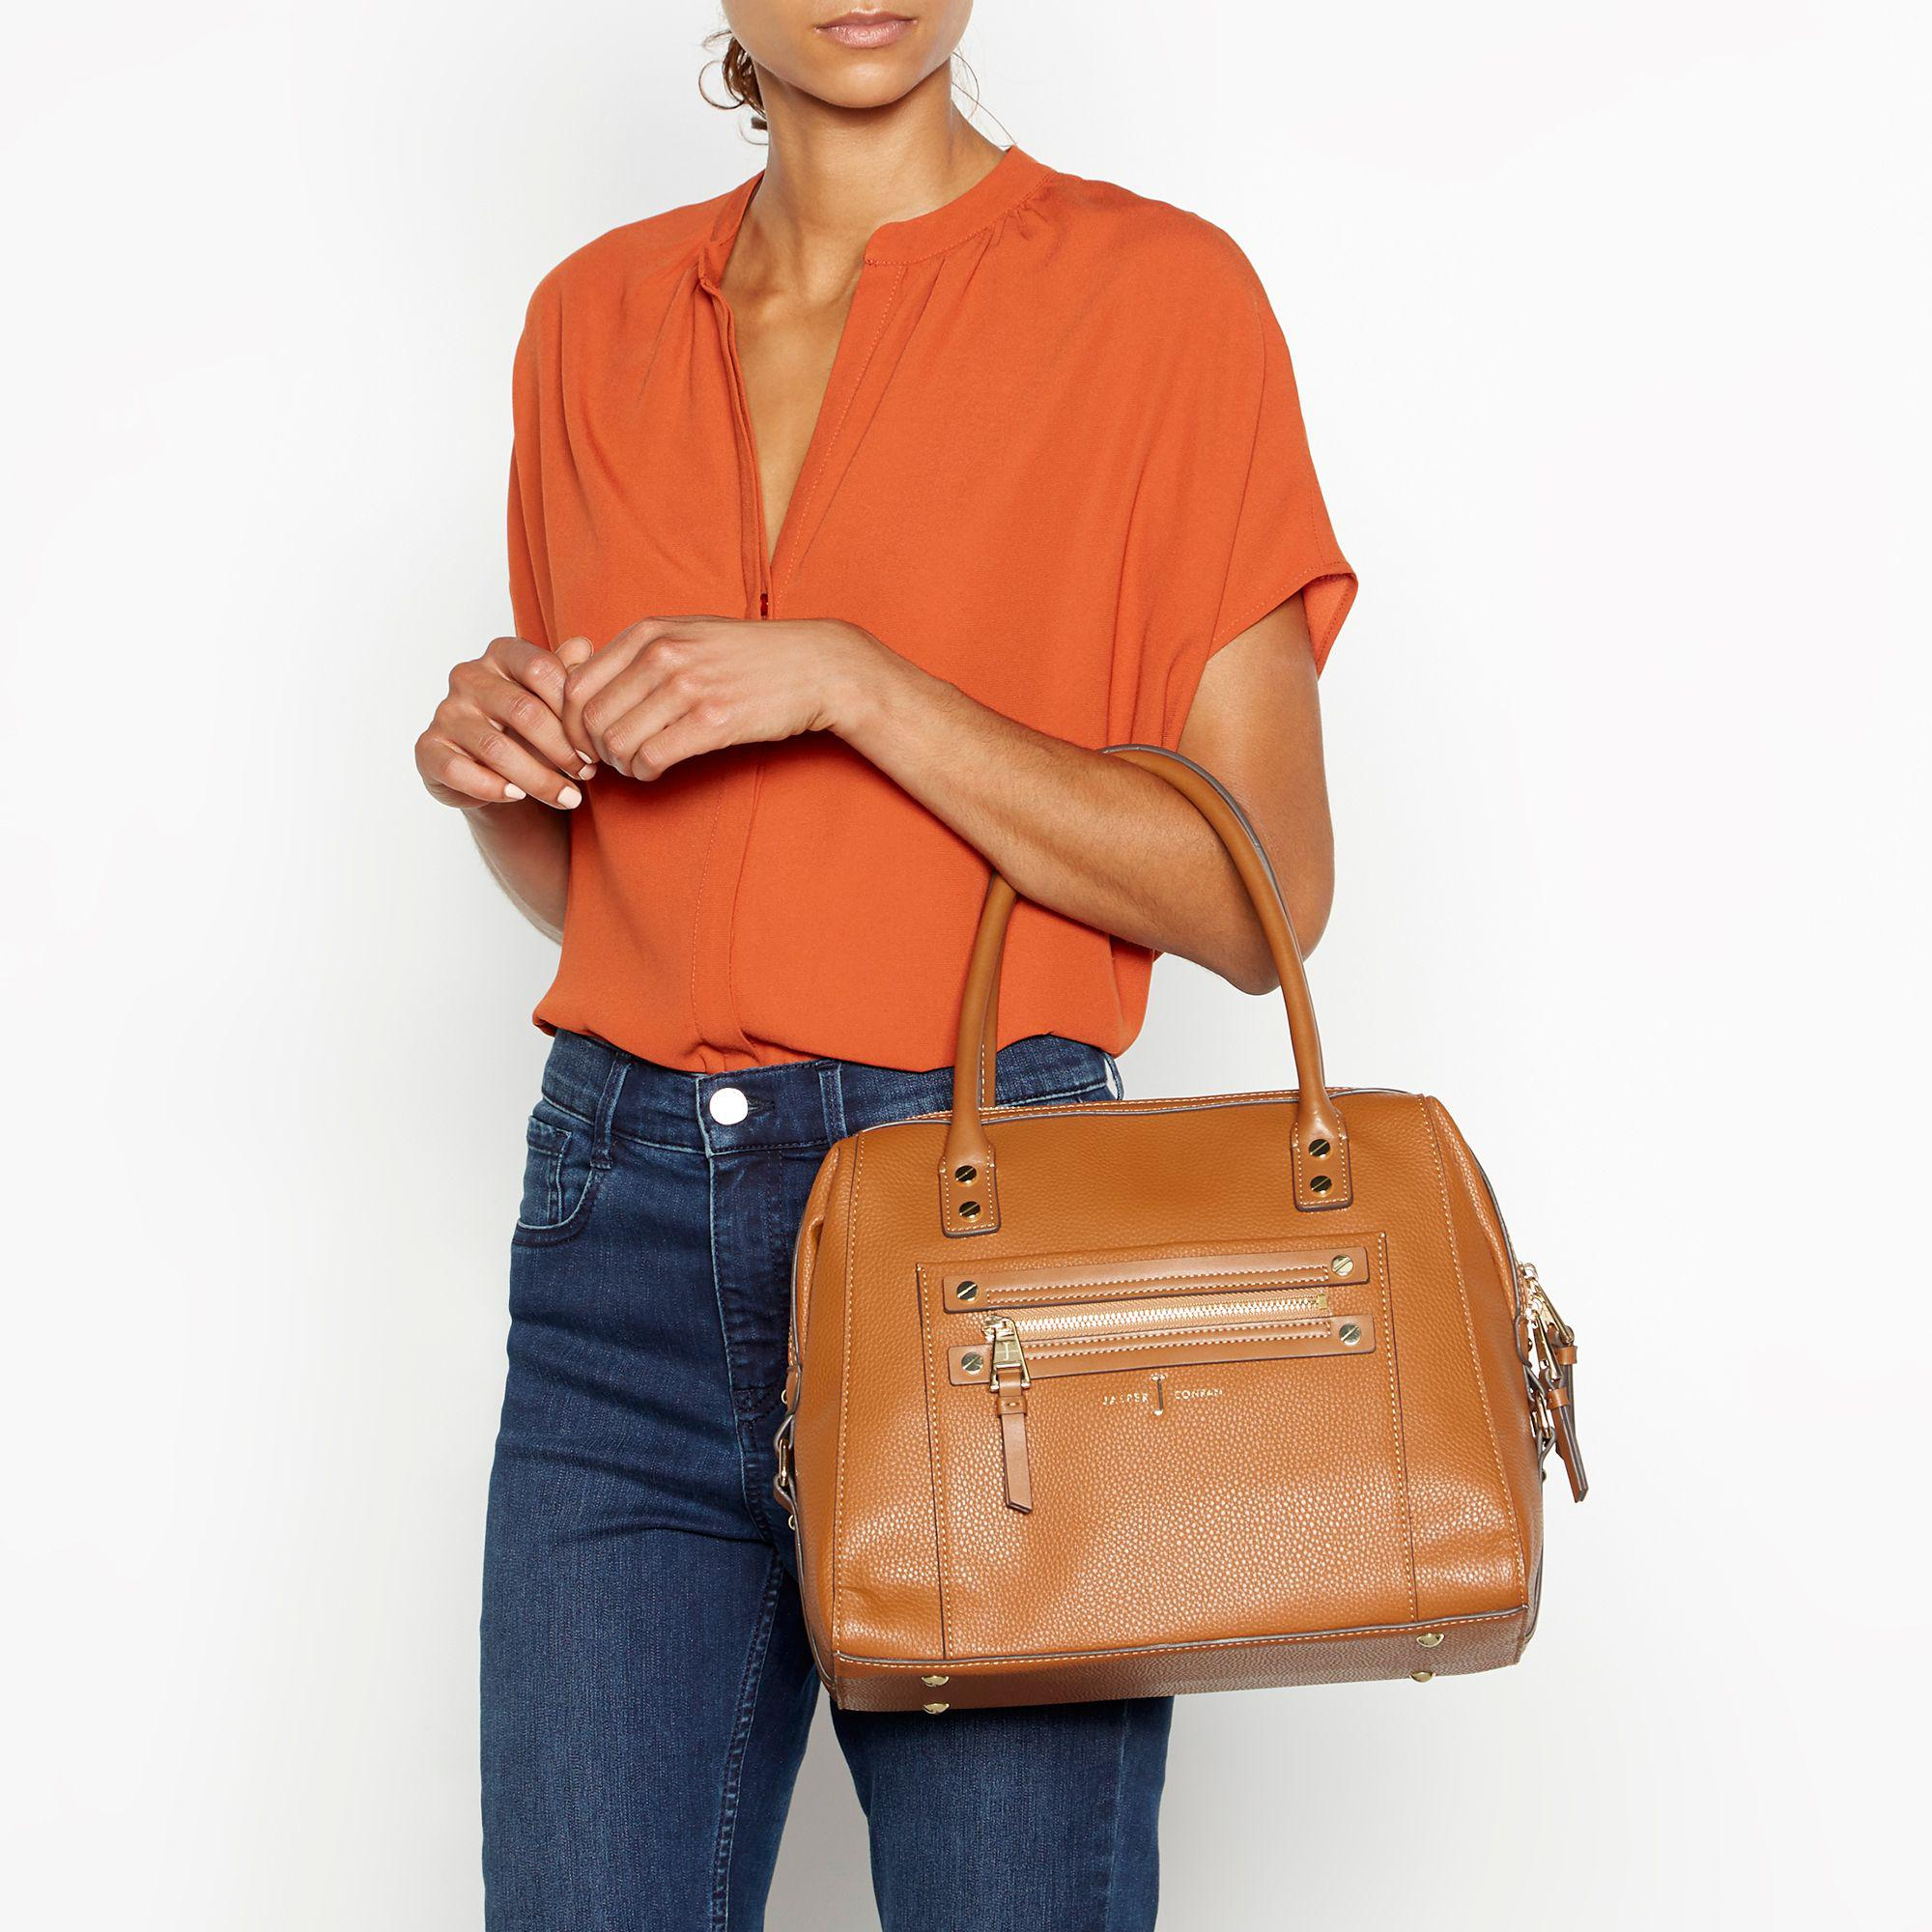 a94db4418d J By Jasper Conran - Brown Tan Stud Detail Bowler Bag - Lyst. View  fullscreen